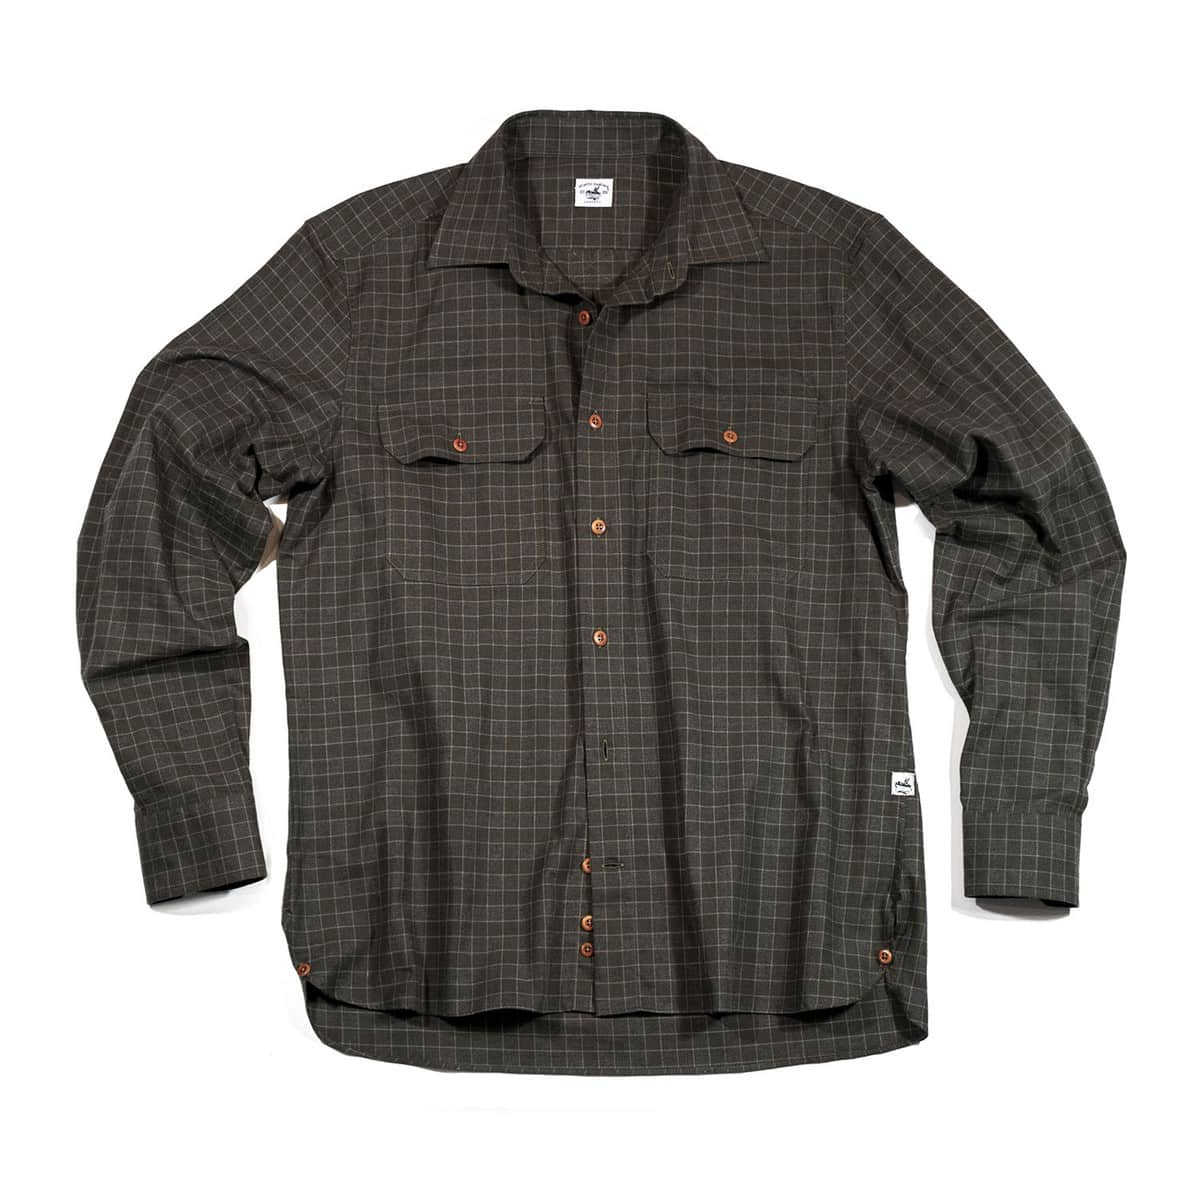 Buy The Bayman's Flannel Shirt - Brown